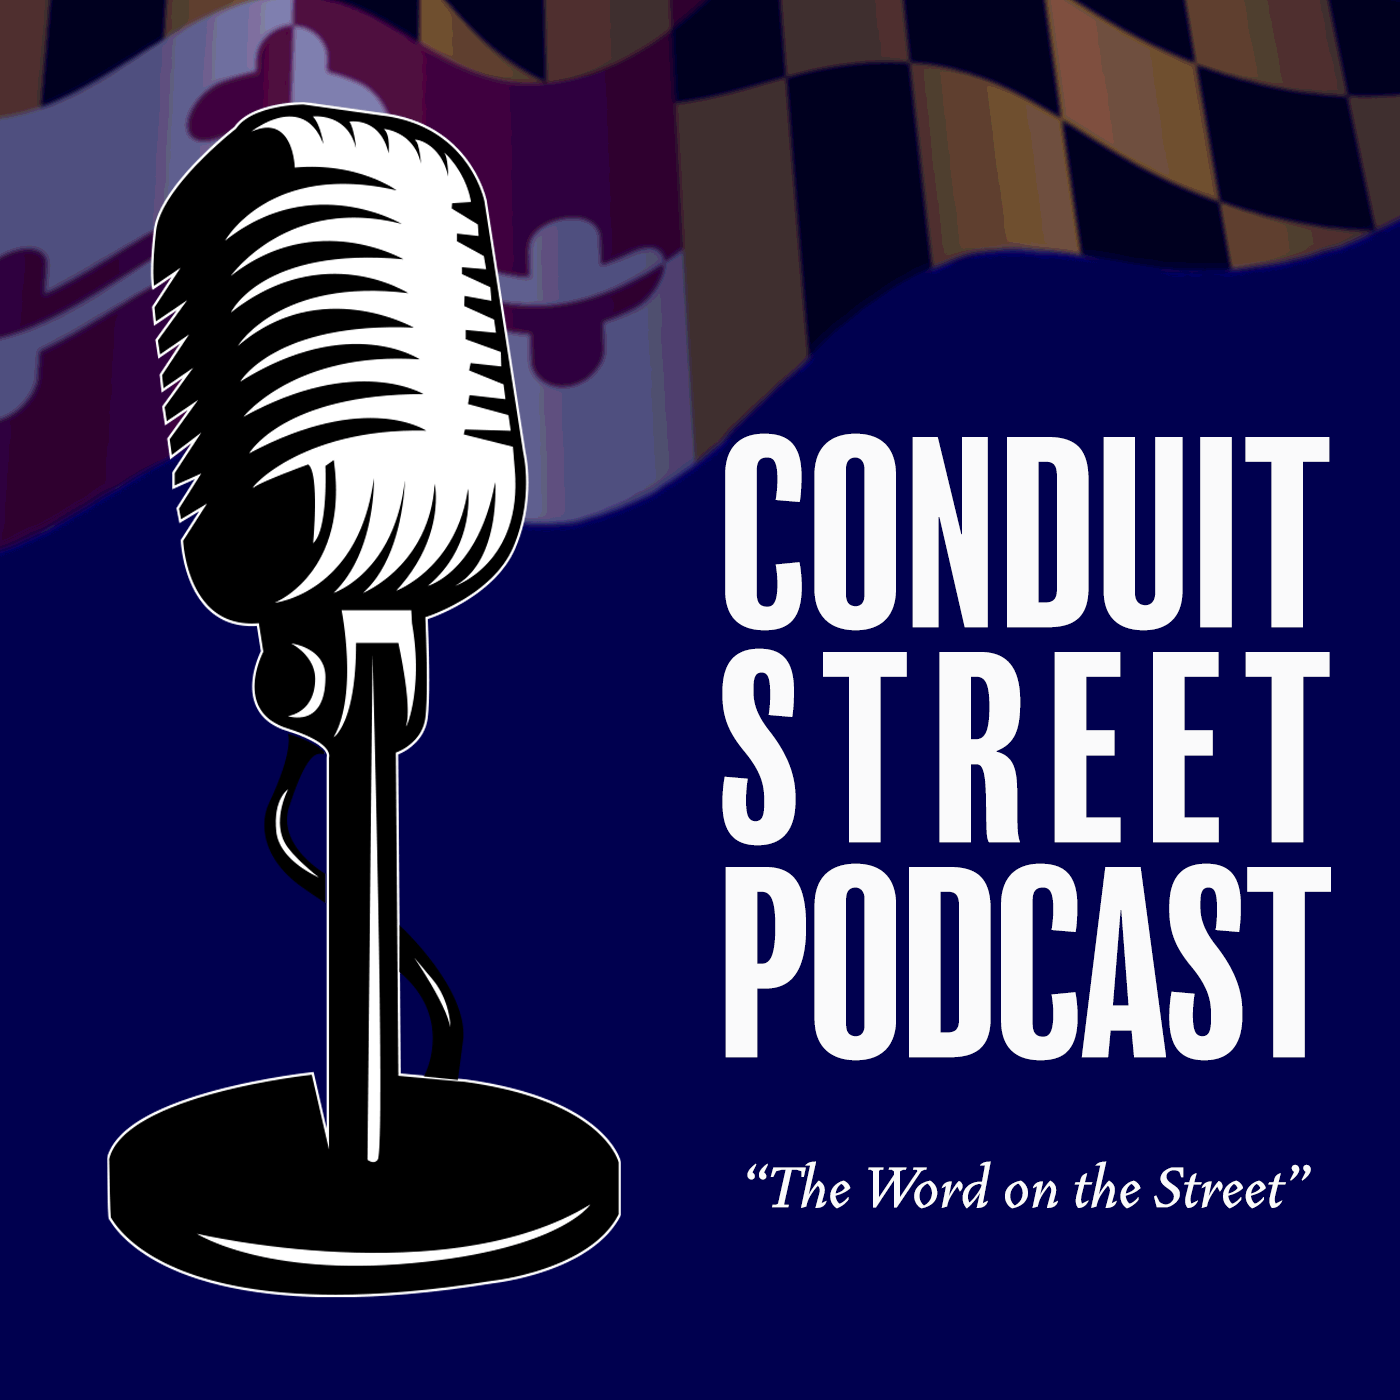 Conduit Street Podcast: Revved Up, But Not Over Reassessments